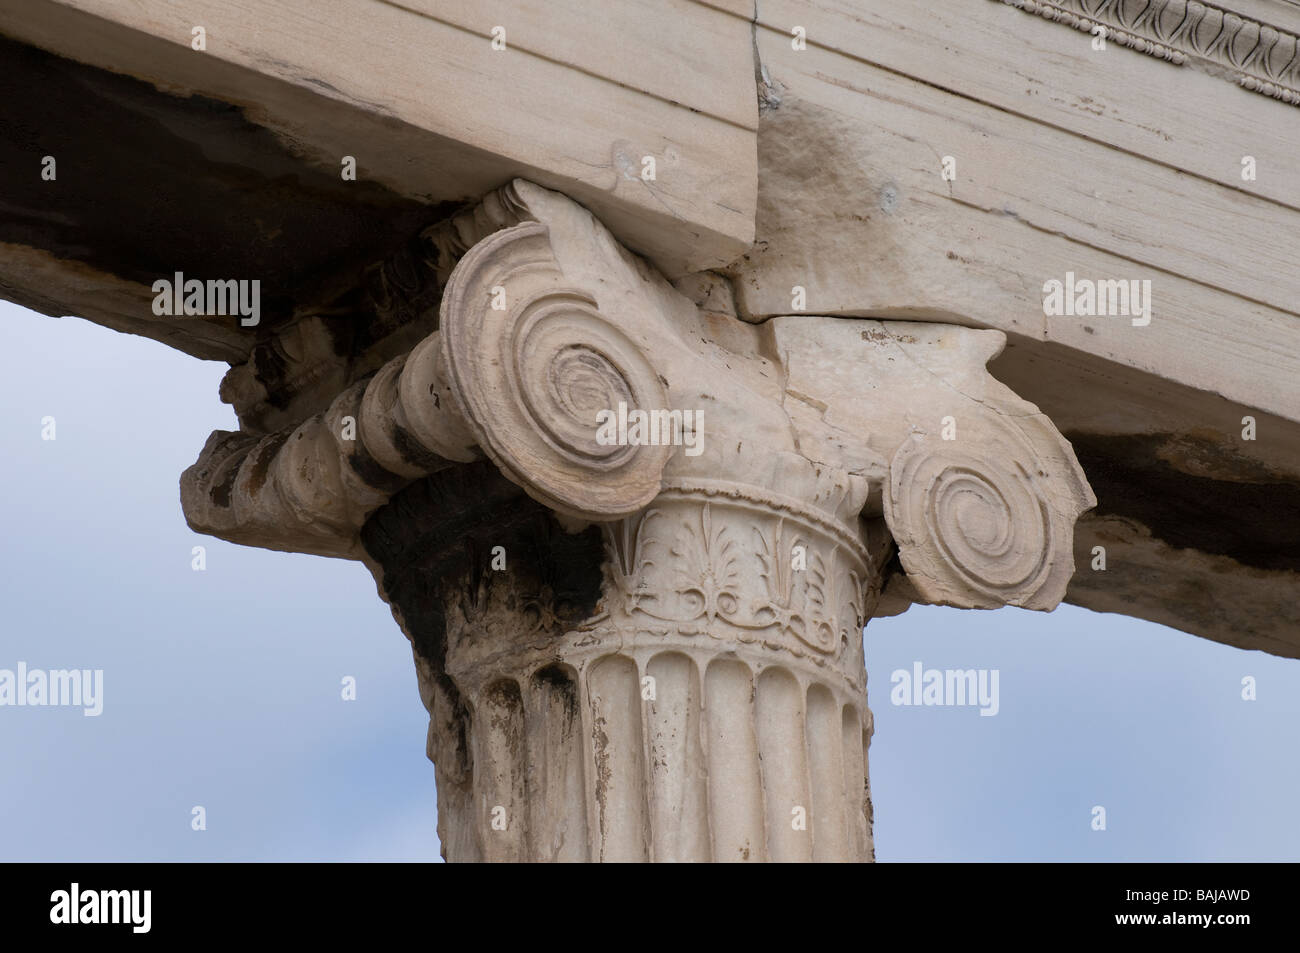 Ionic Order Of Greek Architecture Stock Photos Amp Ionic